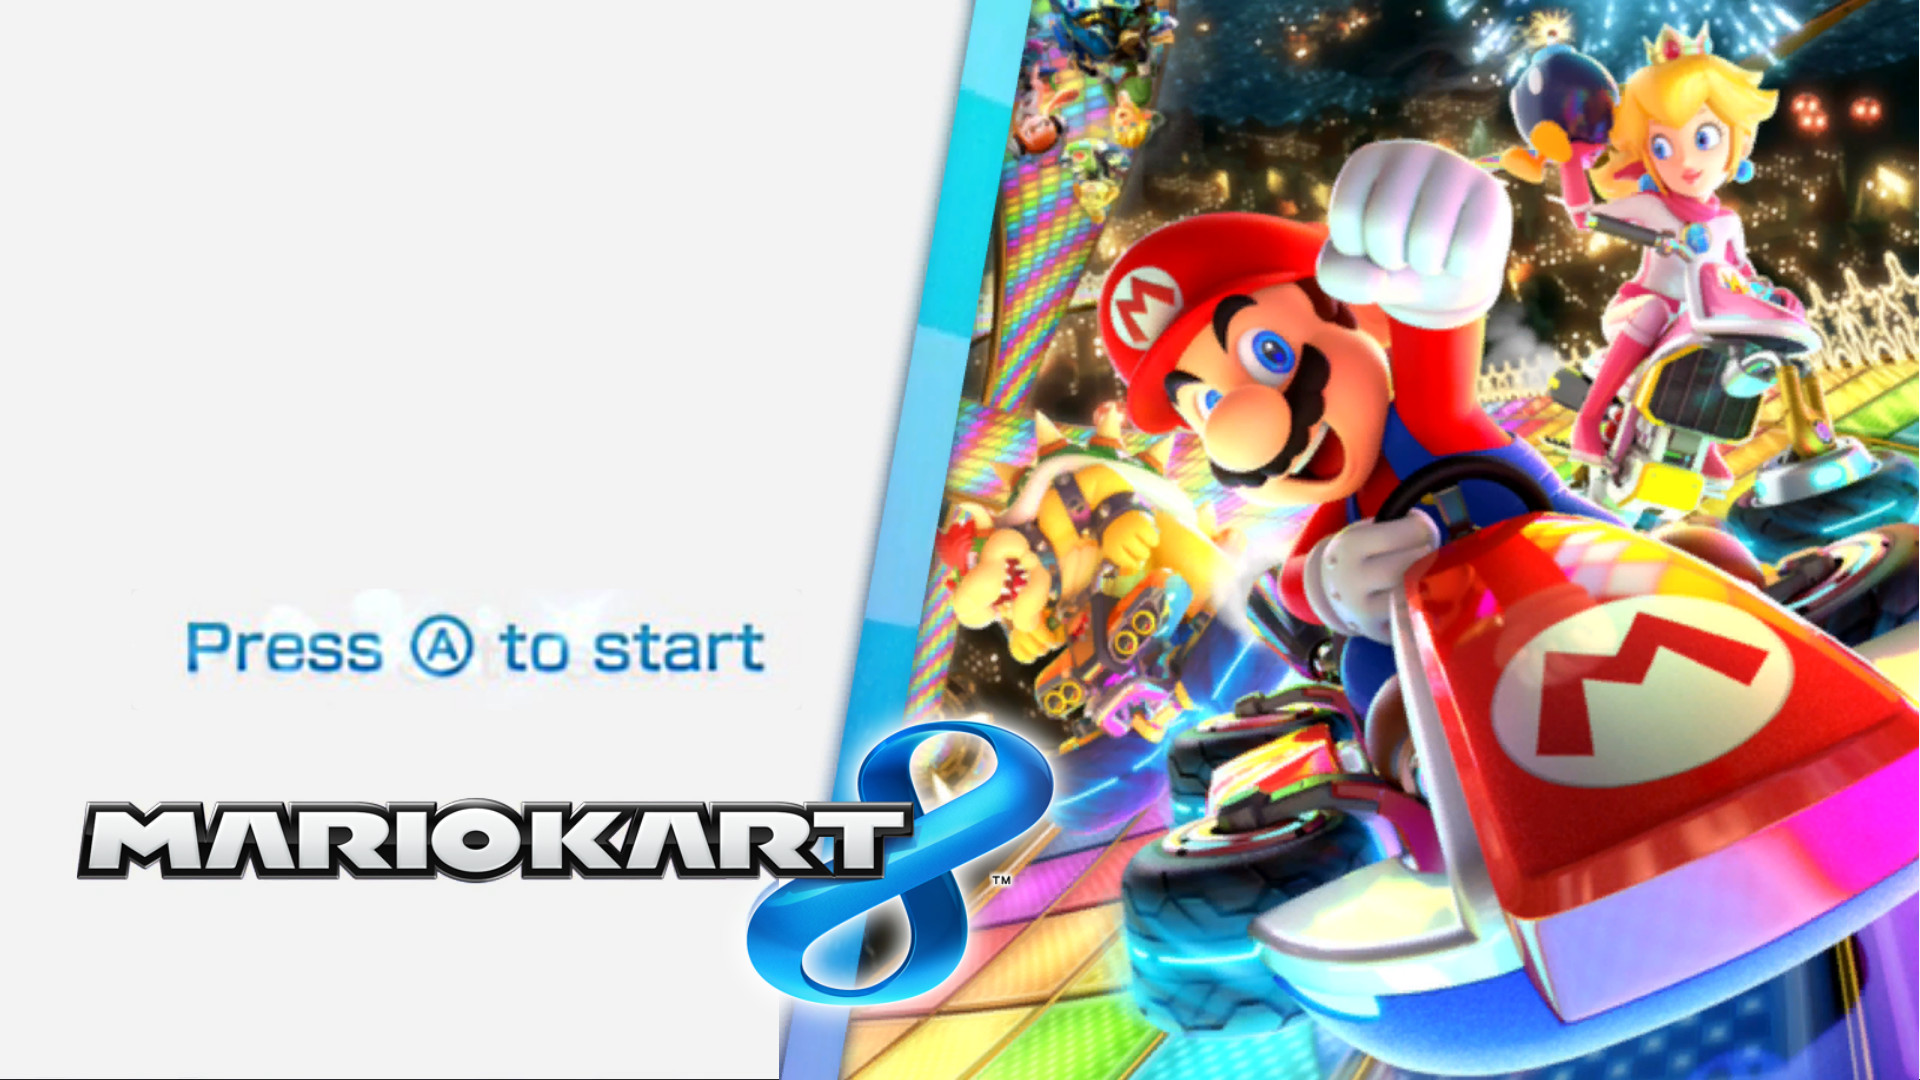 Mario Kart 8 Deluxe Title Screens Mario Kart 8 Works In Progress